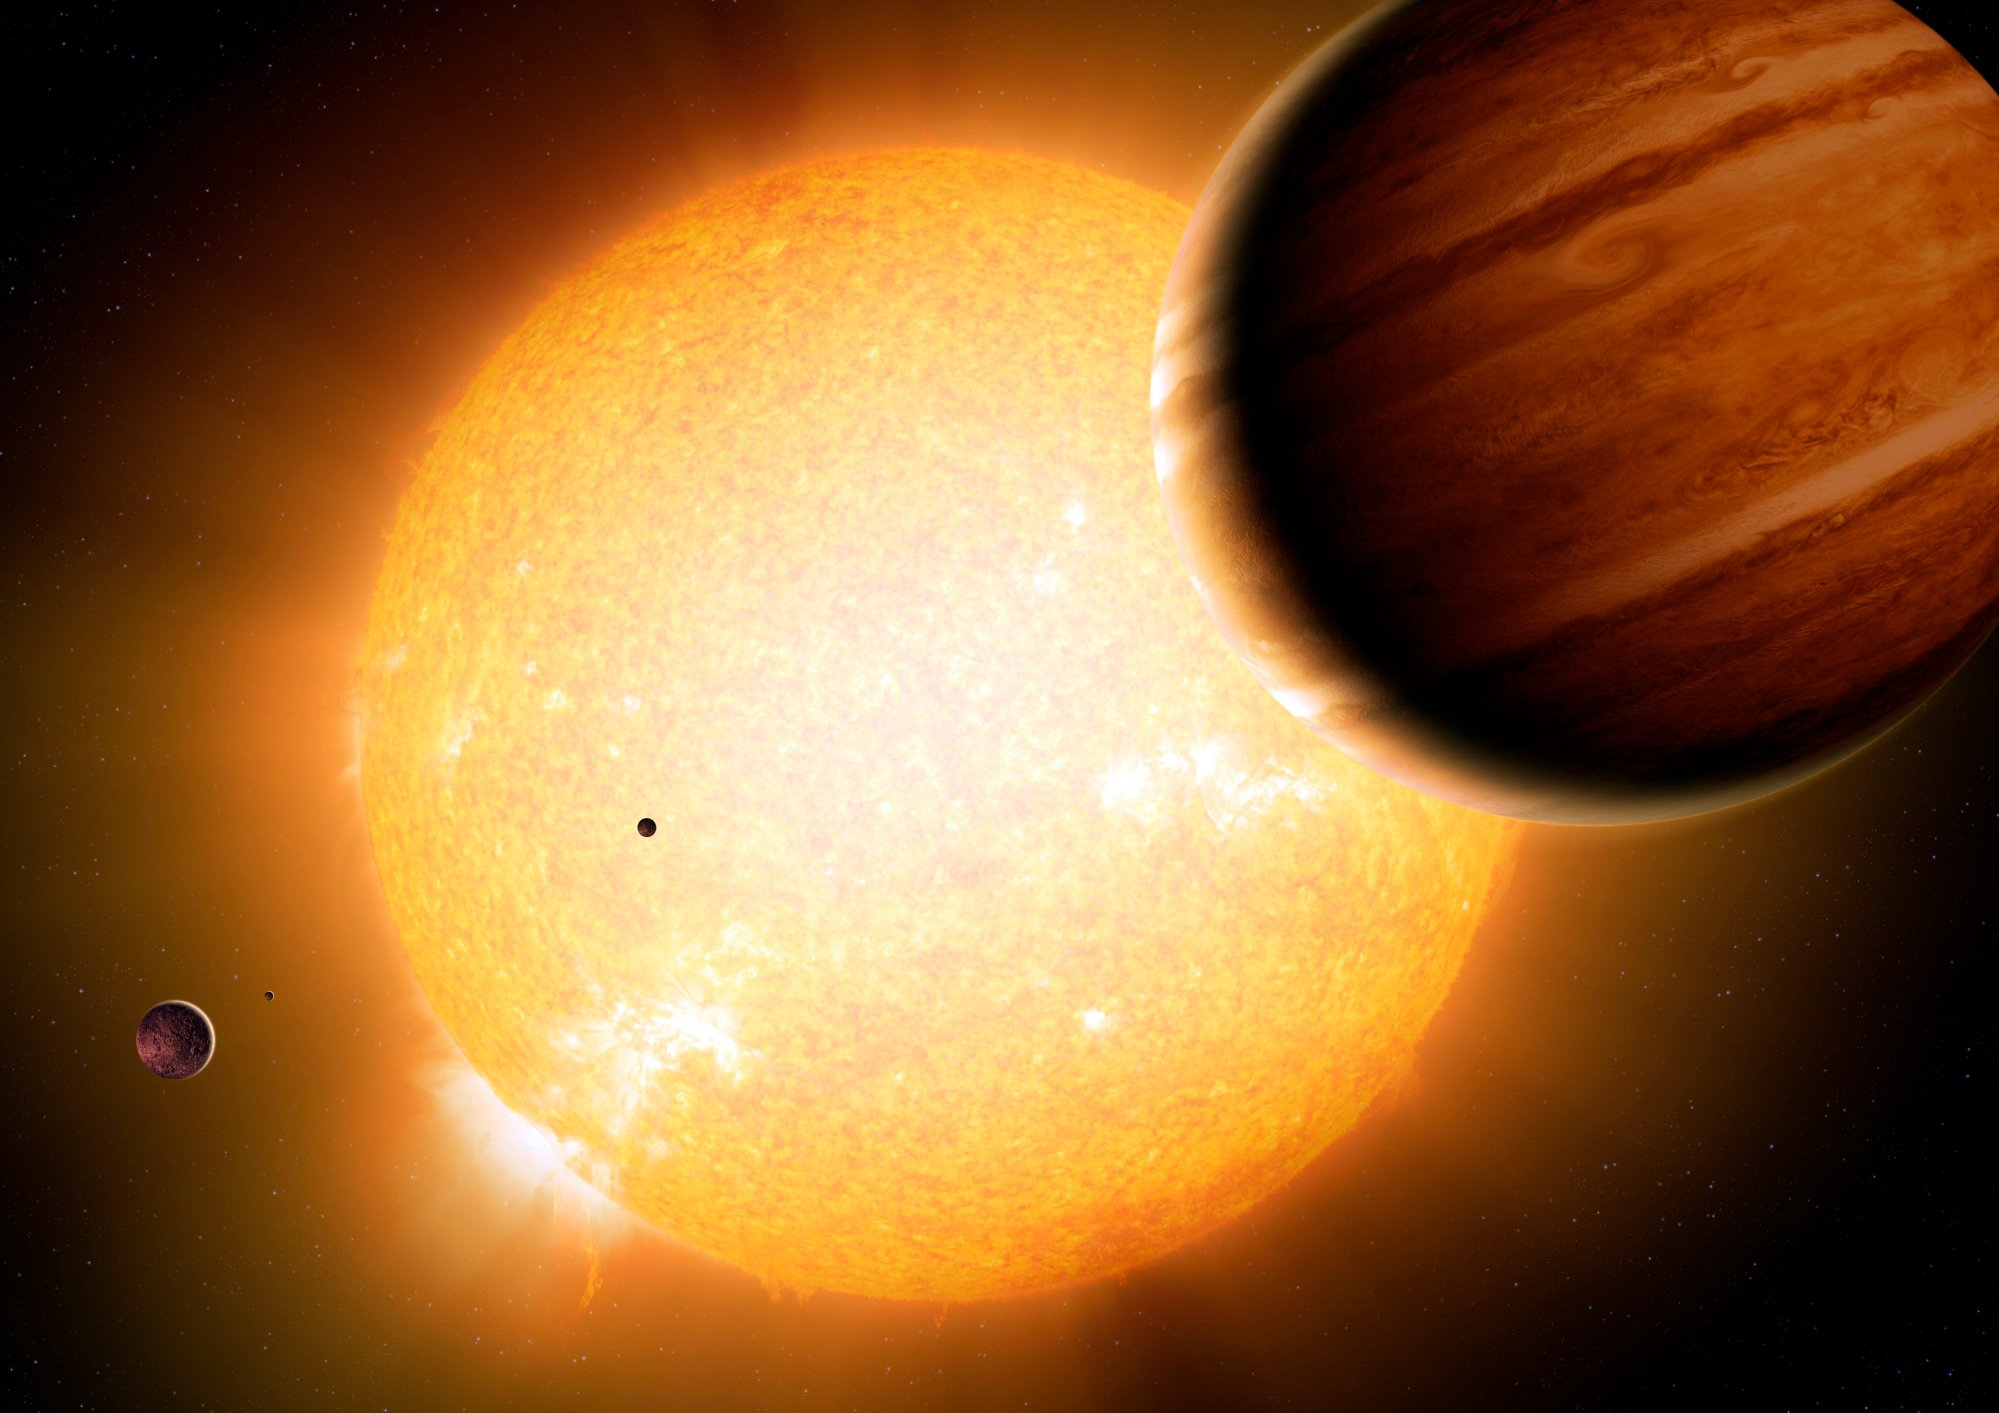 Alien planetary system. Computer artwork of a star (centre) and its planets. The planet's shown here have a mass similar to Jupiter but orbit much closer to their sun, meaning they have a much hotter surface temperature and giving them the name Hot Jupiters.